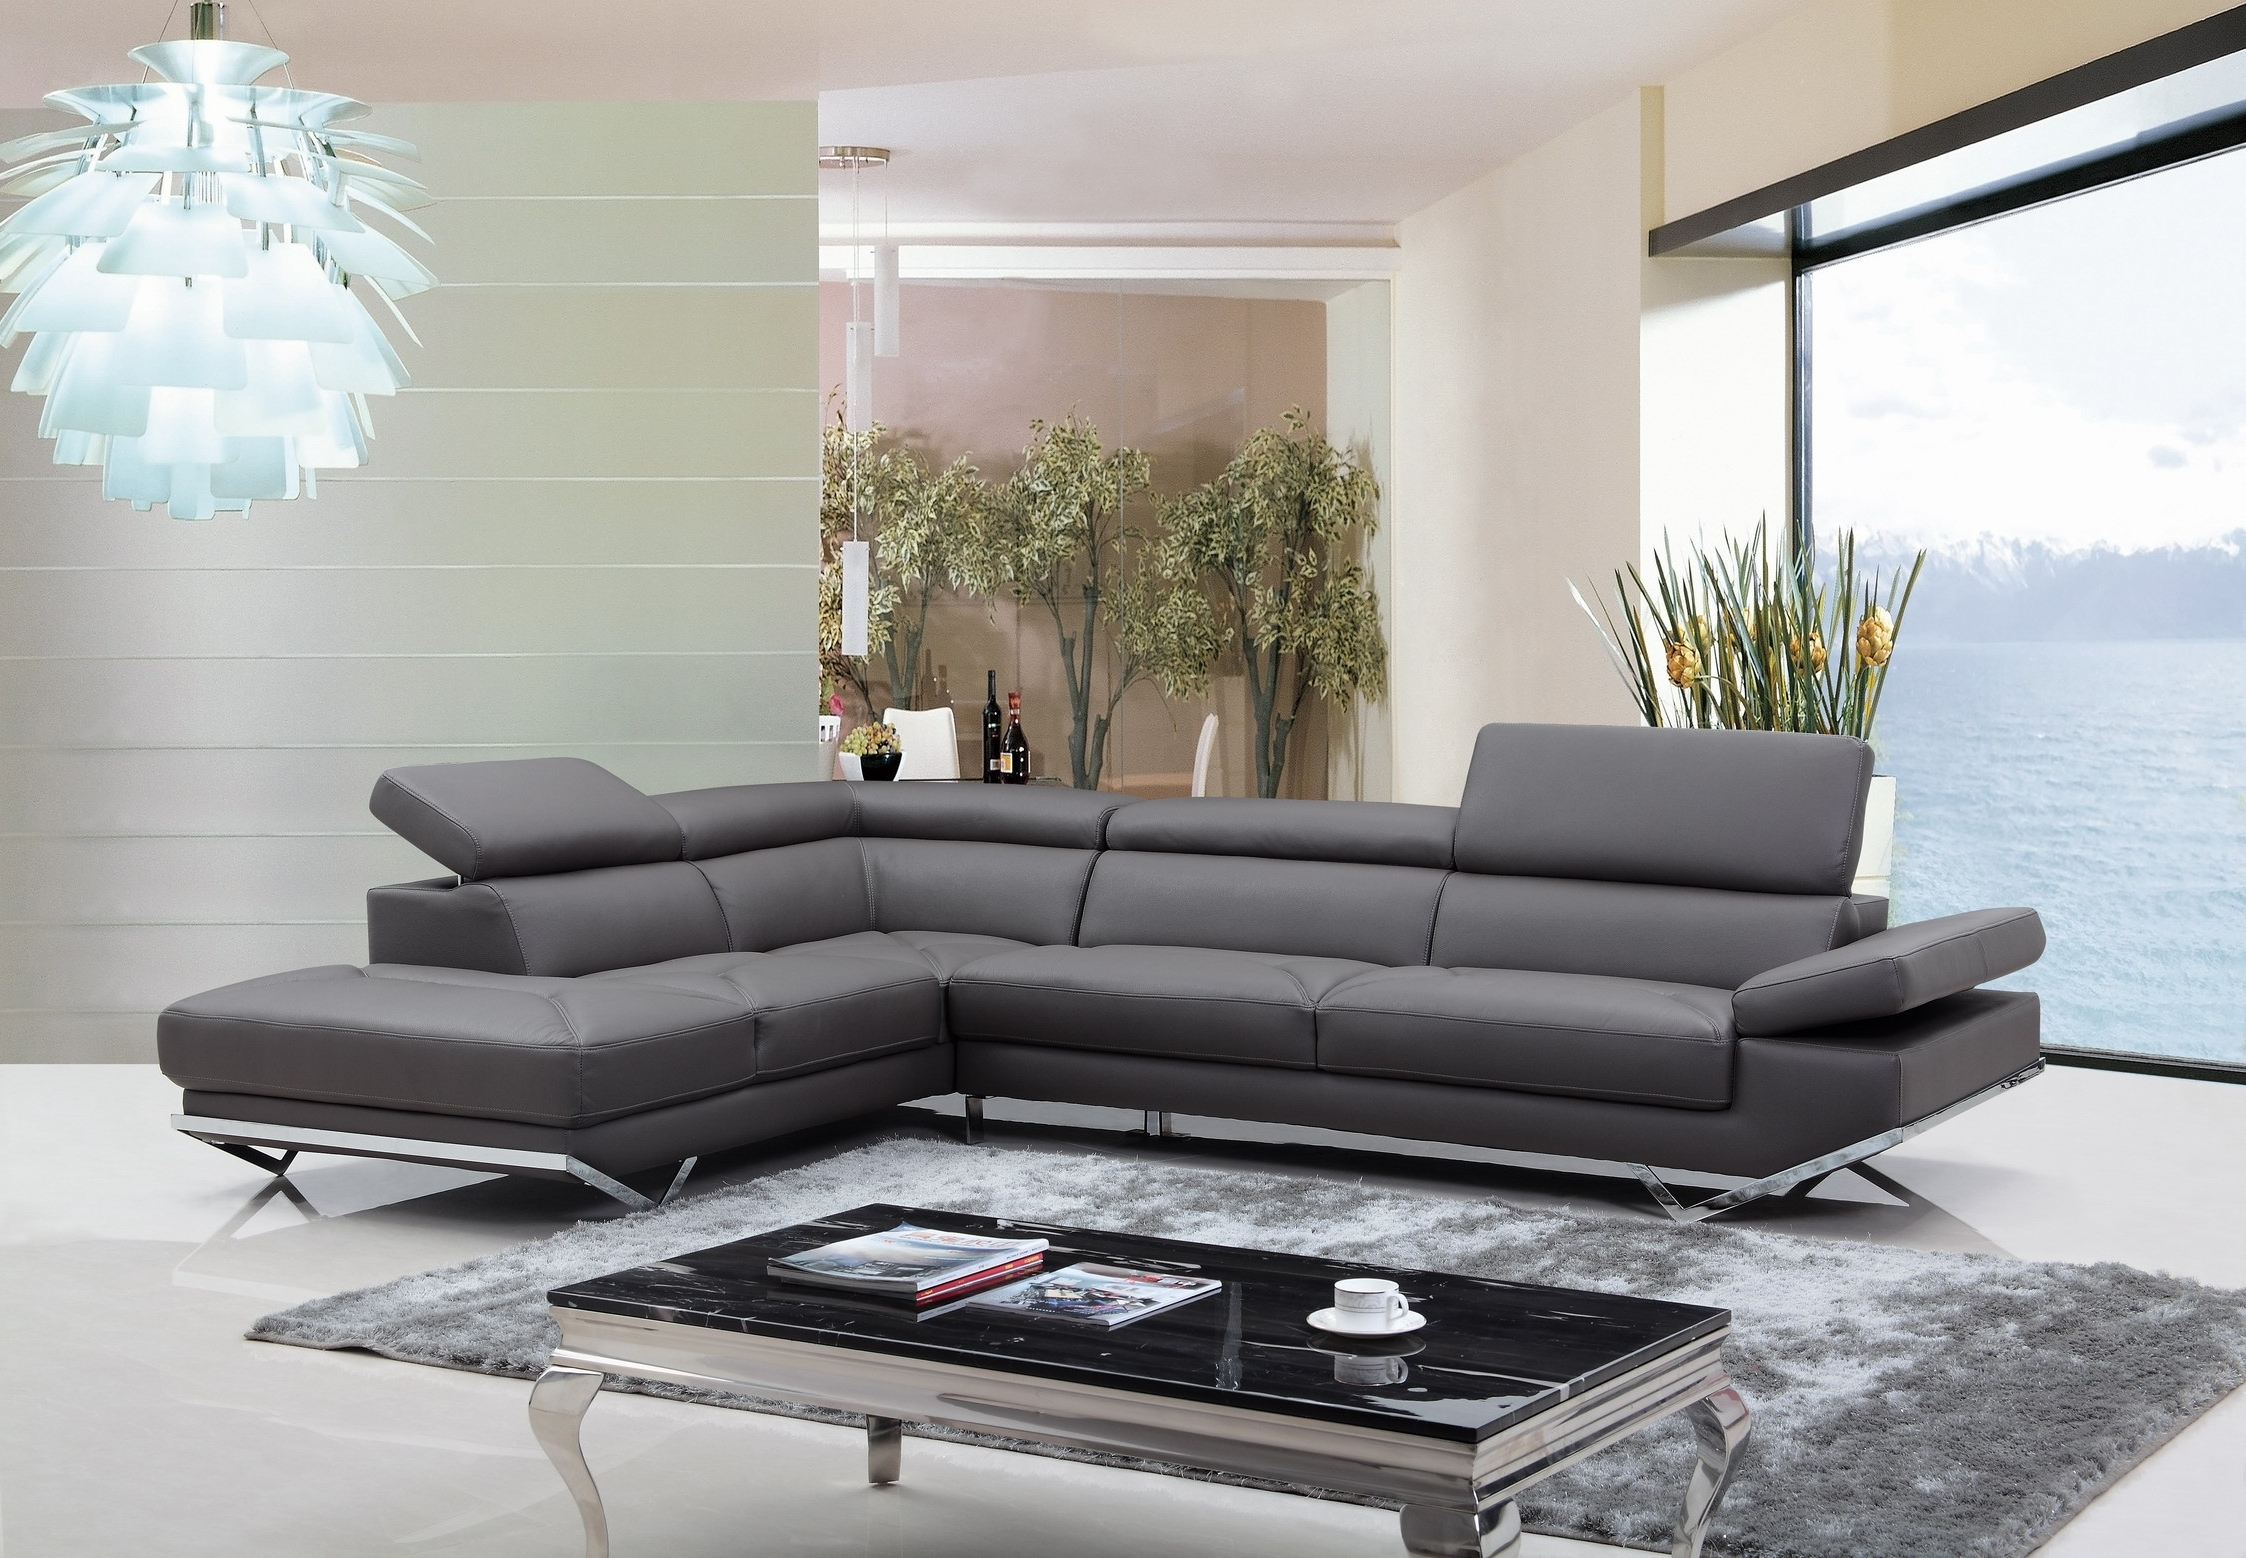 Quebec Sectional Sofas Pertaining To 2019 Casa Quebec Modern Dark Grey Eco Leather Sectional Sofa (Gallery 2 of 20)